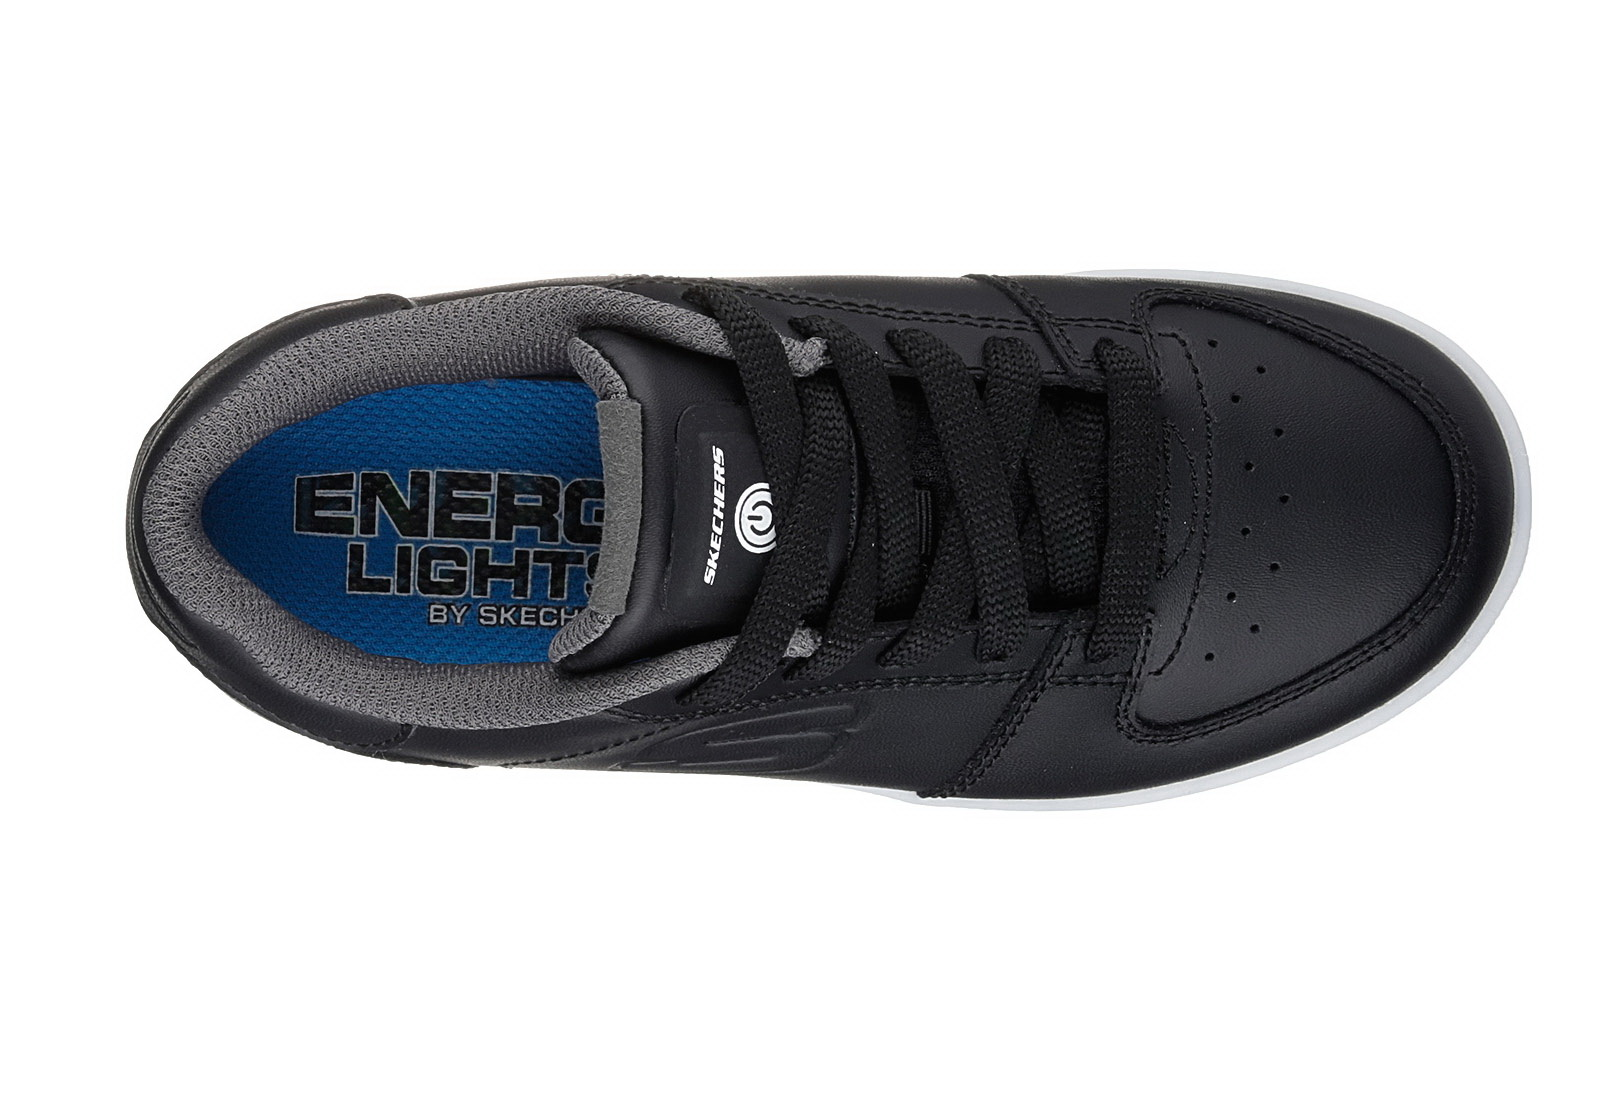 63eb85689 Skechers Shoes - Energy Lights - Elate - 90601l-blk - Online shop ...